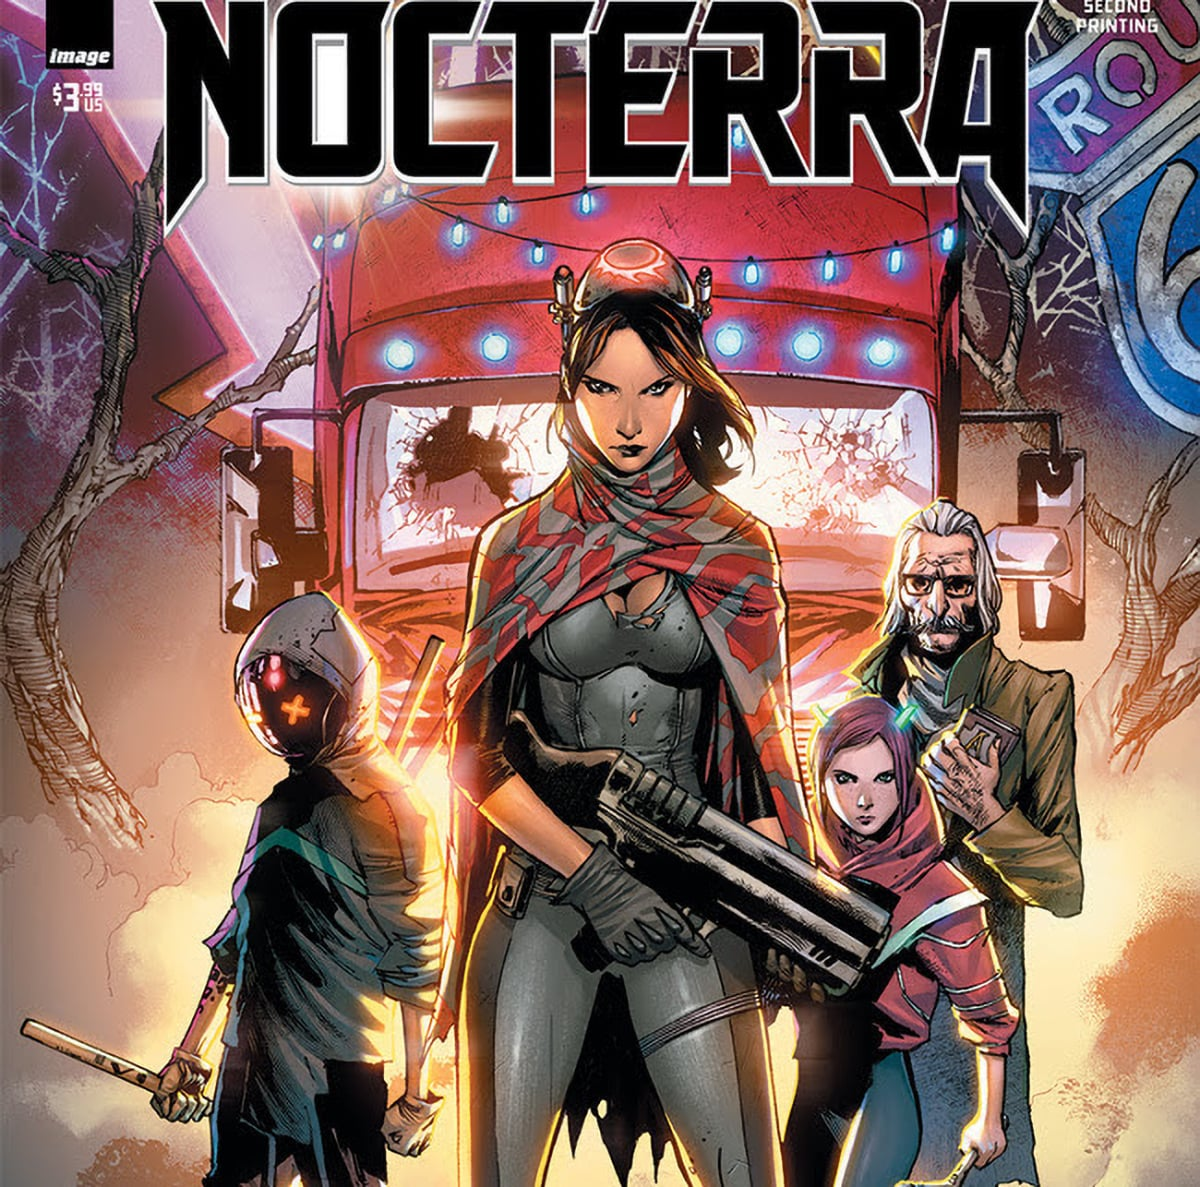 Image Comics' 'Nocterra' #2 sells out and goes back to print